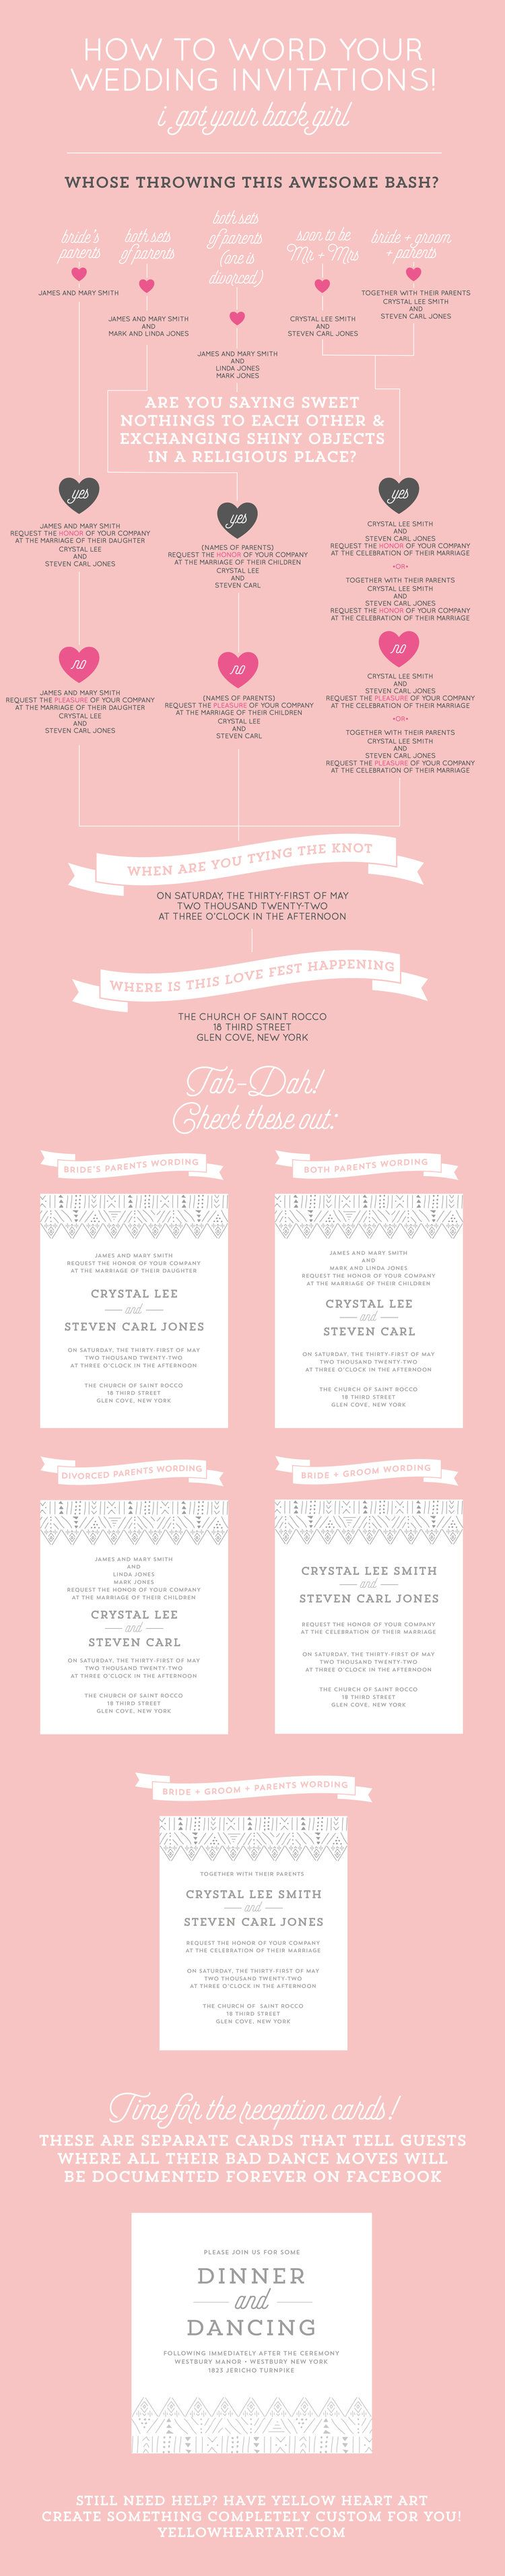 how to word your wedding invitations, couples hosting wedding ...